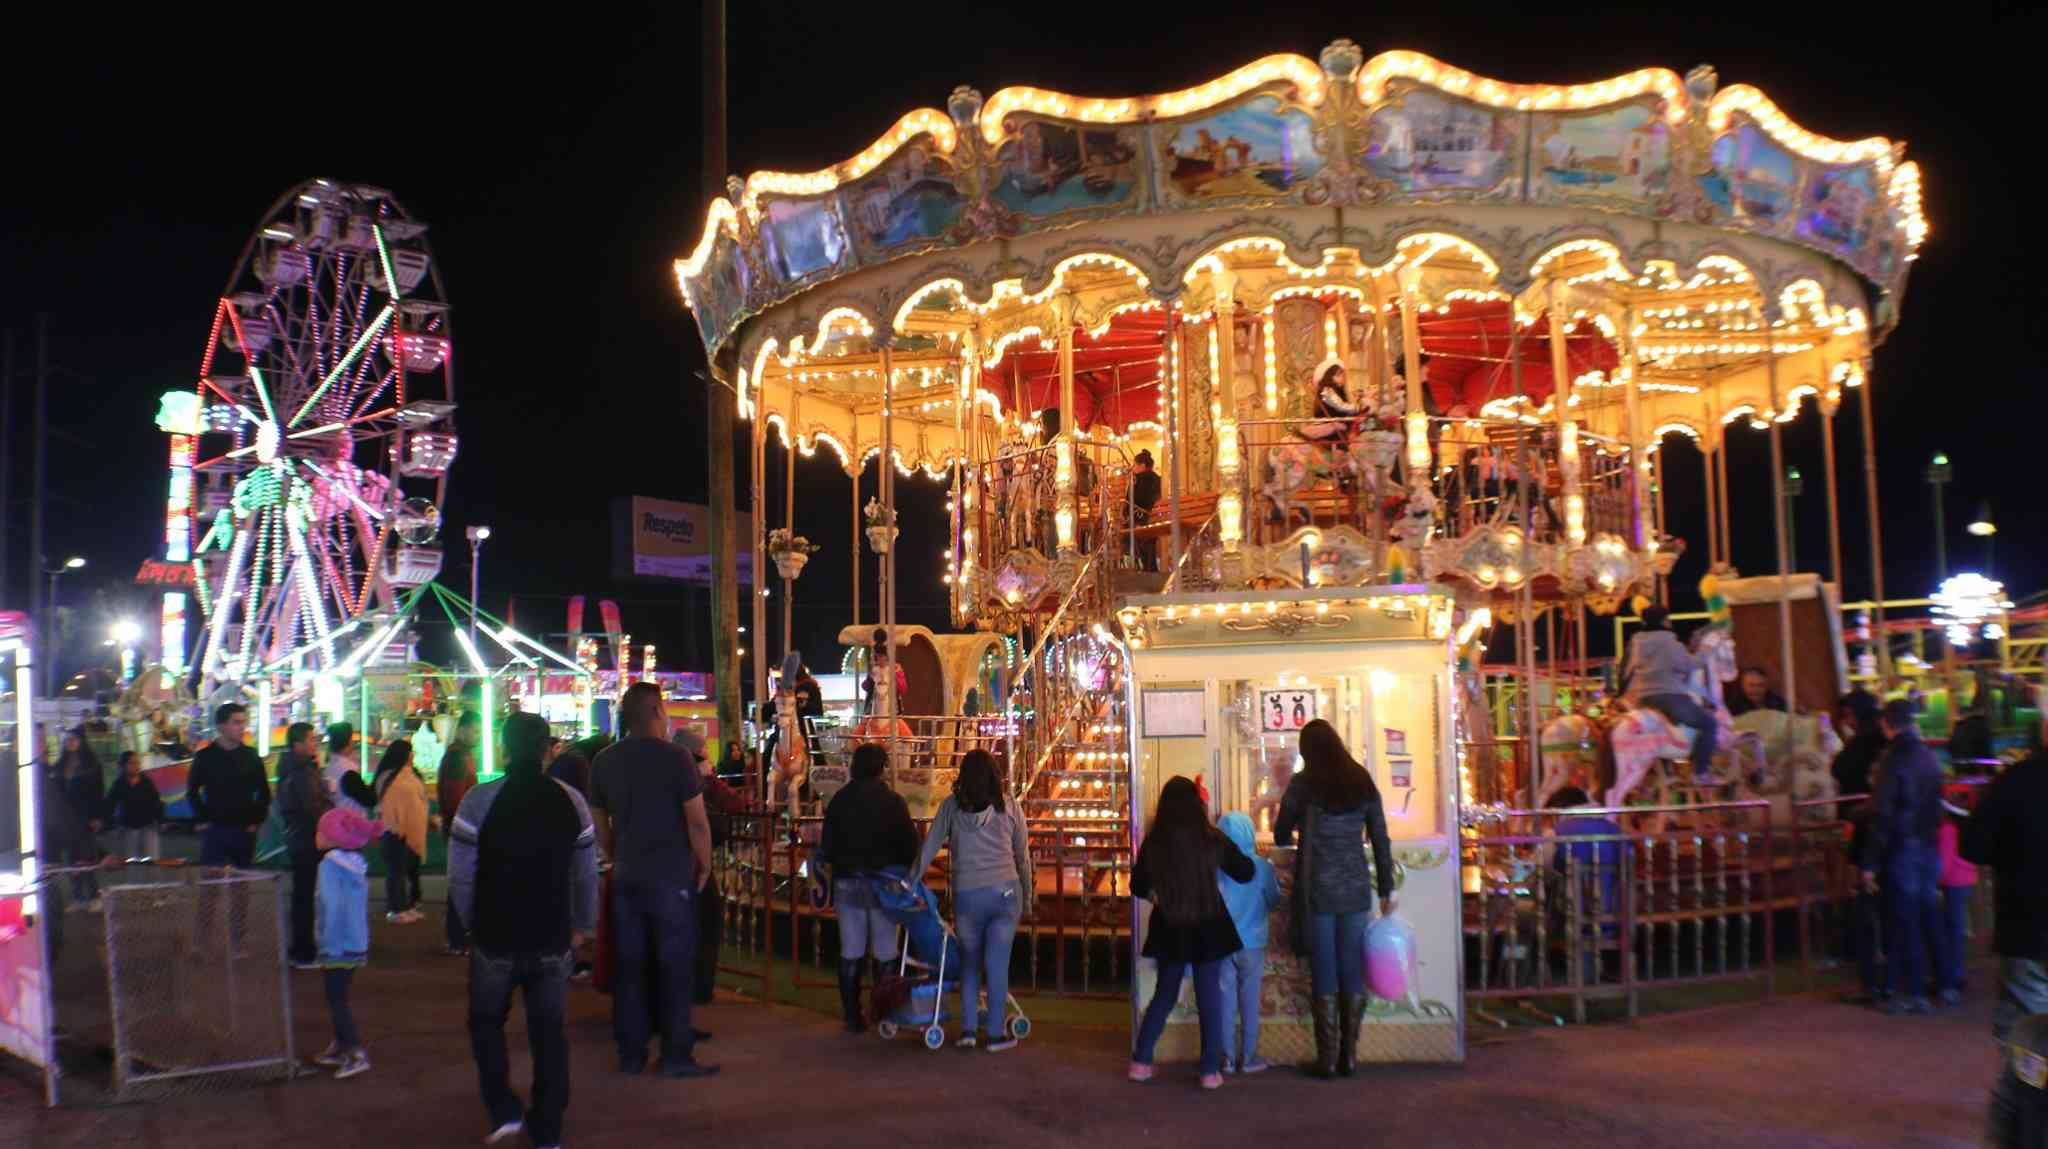 Amusement park rides including a Ferris wheel and a carousel